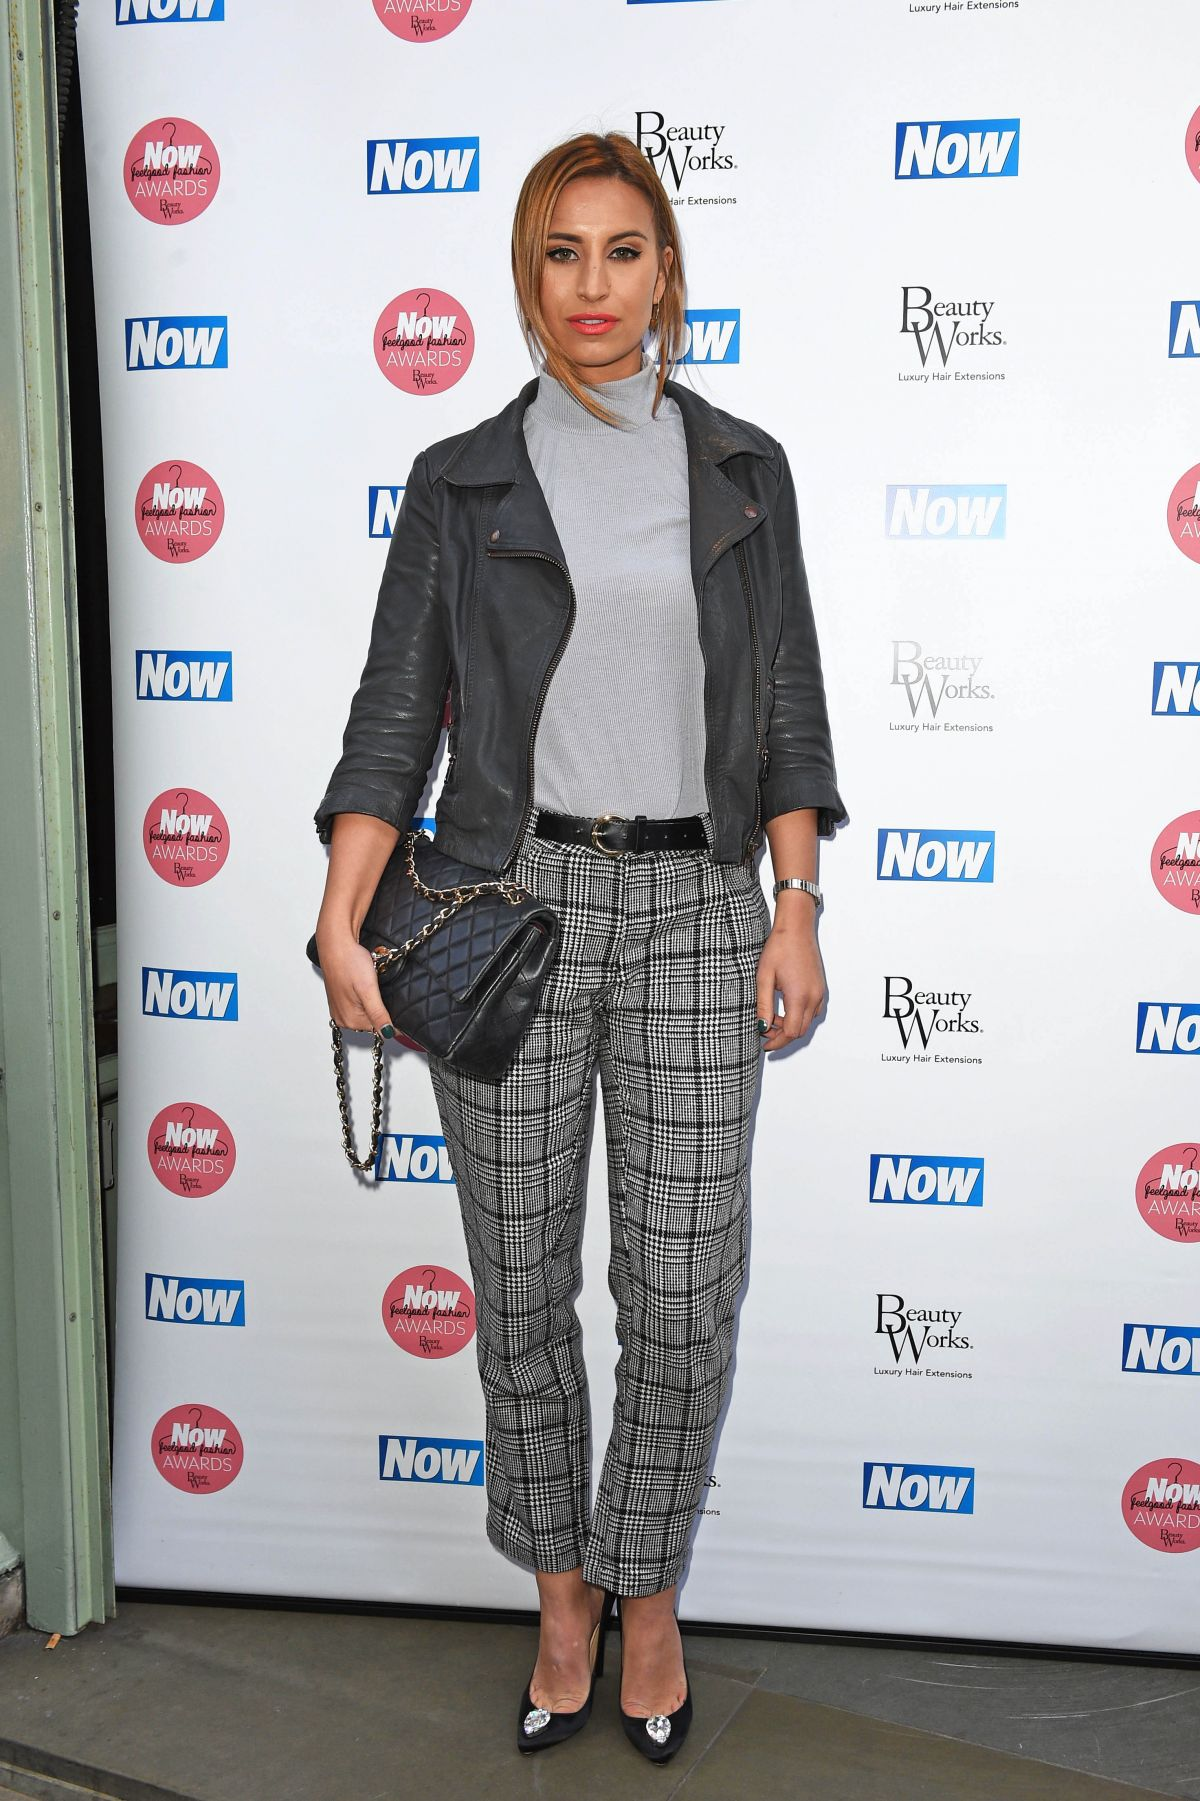 Fashion In London Today: FERNE MCCANN At Now Magazine's Feel Good Fashion Awards In